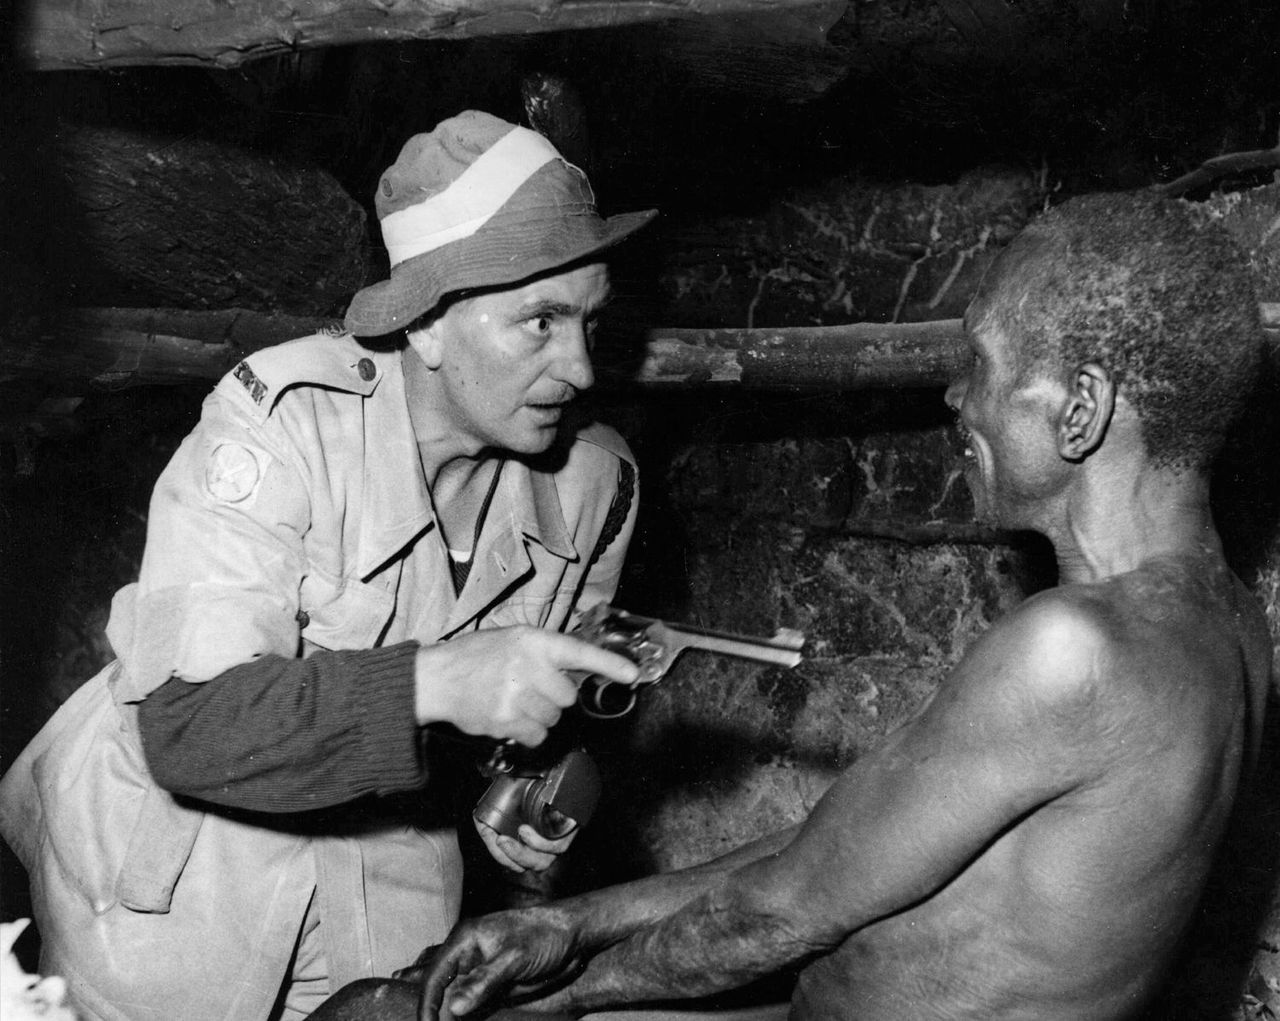 A British officer aims his revolver at a smiling suspected Mau Mau during a night raid. 1952, Kenya note the trigger discipline trigger discpline and the similarity to the depiction from the Trenches above...some things never change